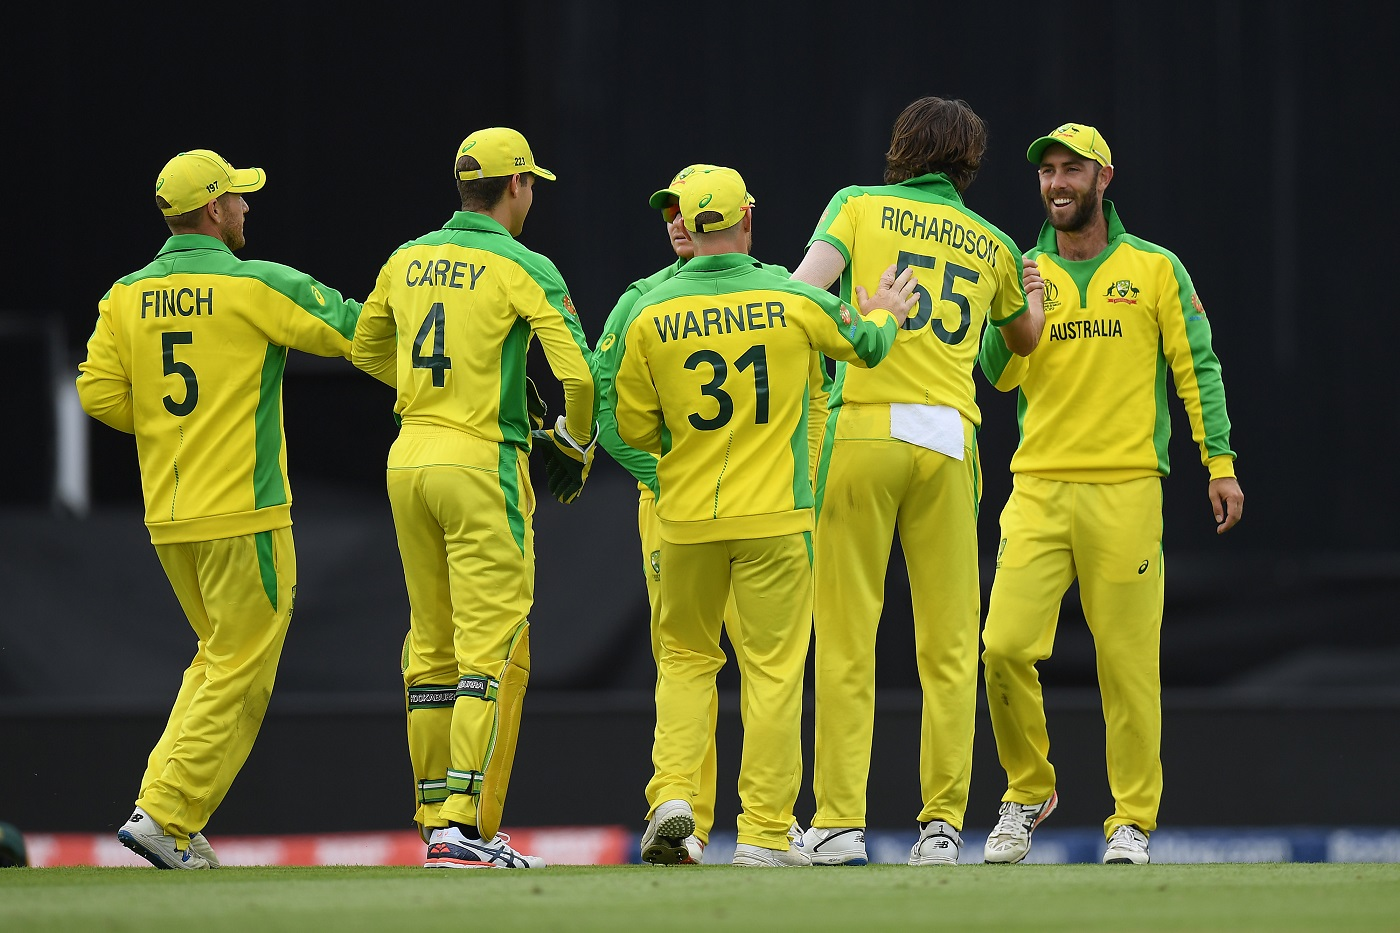 Australia defeat Sri Lanka by 87 runs in 20th match of 2019 World Cup